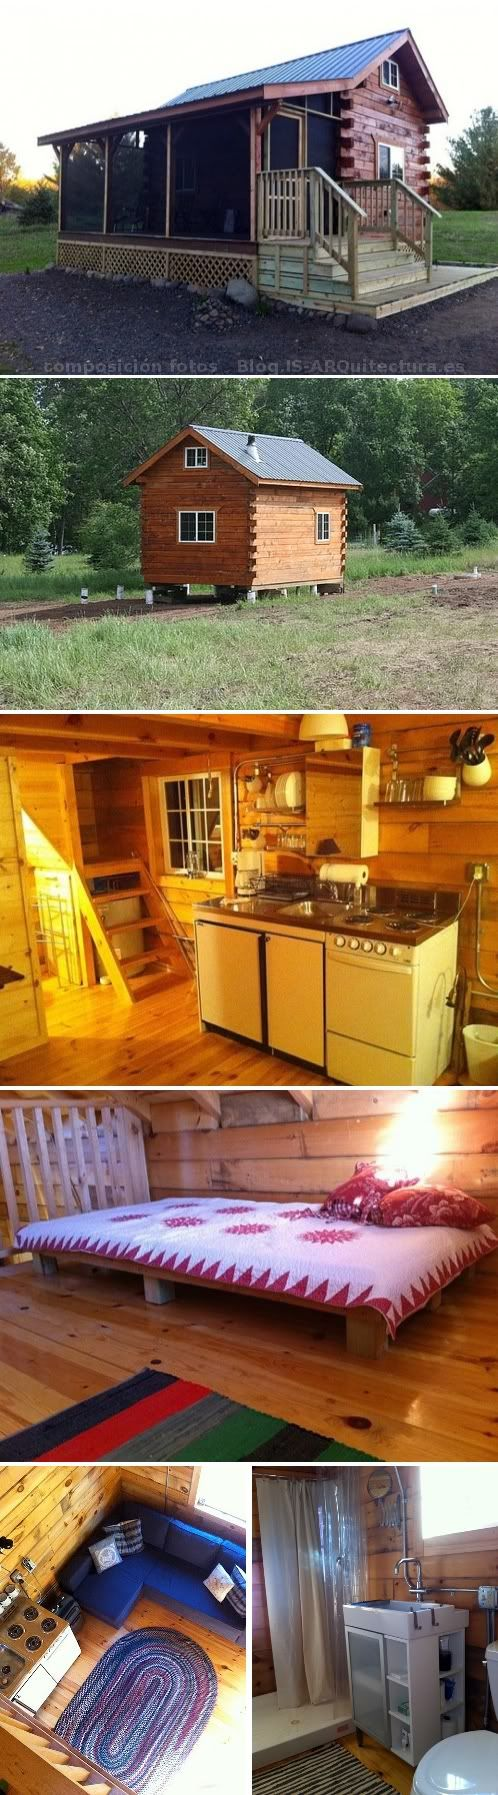 Tiny log cabin with screened in porch on a budget tiny for Log cabin screened in porch